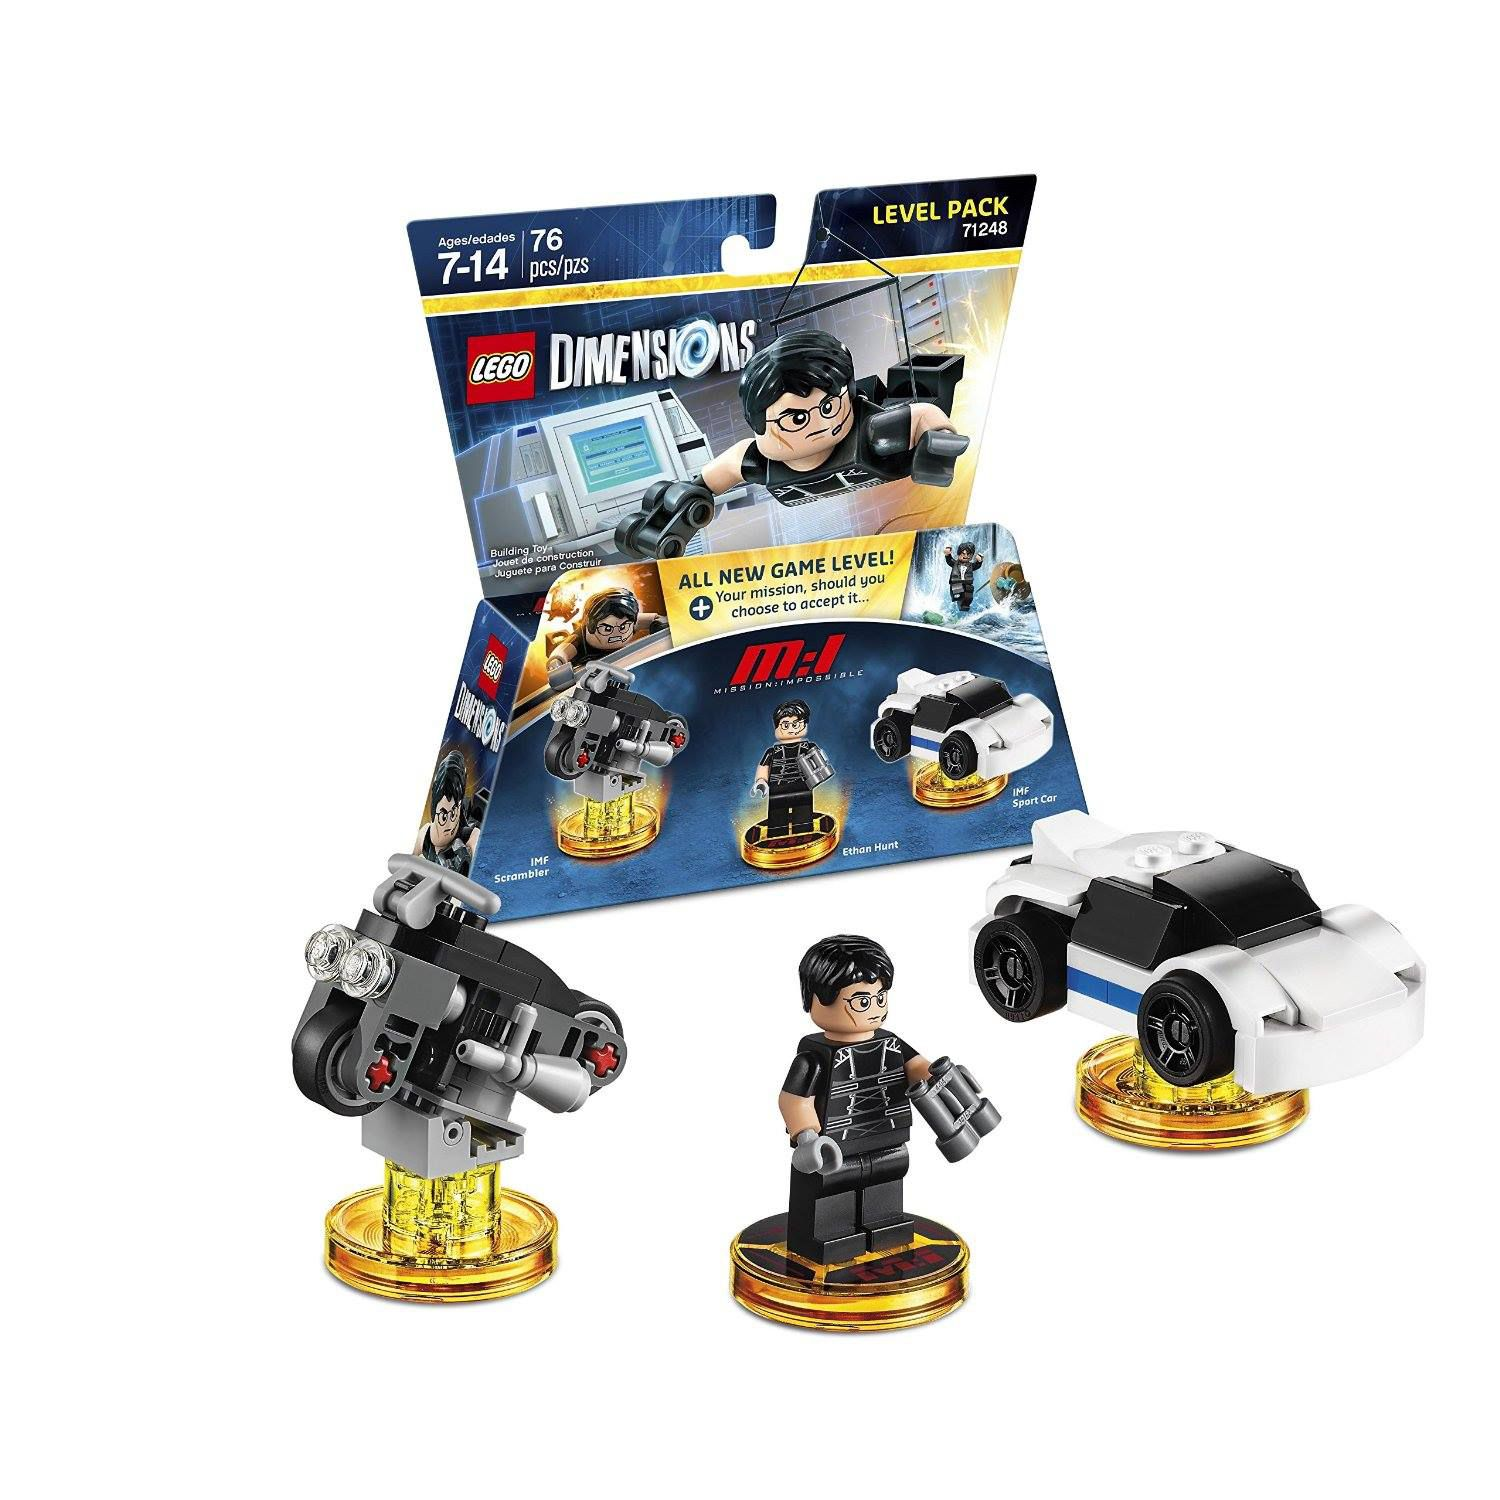 LEGO Dimensions 71248 Level Pack Mission Impossible LEGO_DIMENSIONS_71248_Mission-Impossible-04.jpg